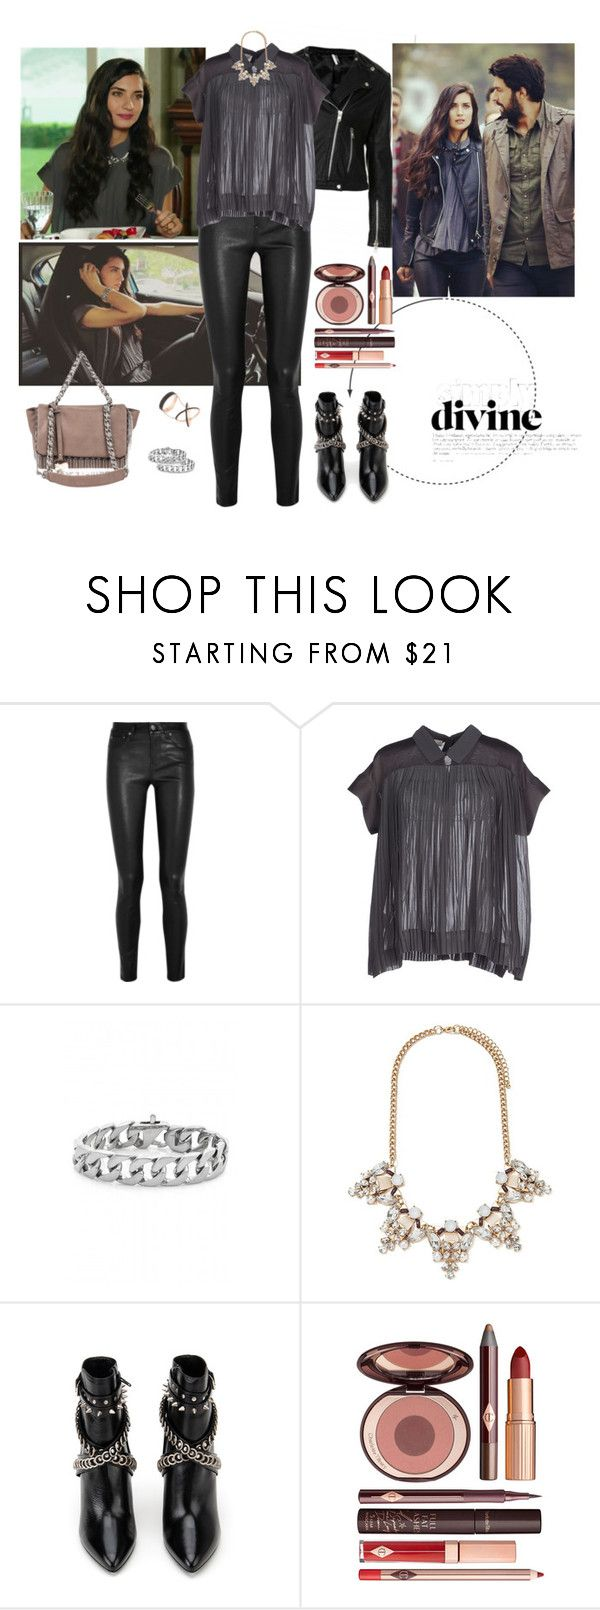 """Kara Para Ask Ep. 19 (Elif - Tuba Buyukustun)"" by chaneladdicted ❤ liked on Polyvore featuring Helmut Lang, Stefanel, Forever 21, Yves Saint Laurent, Charlotte Tilbury, women's clothing, women, female, woman and misses"